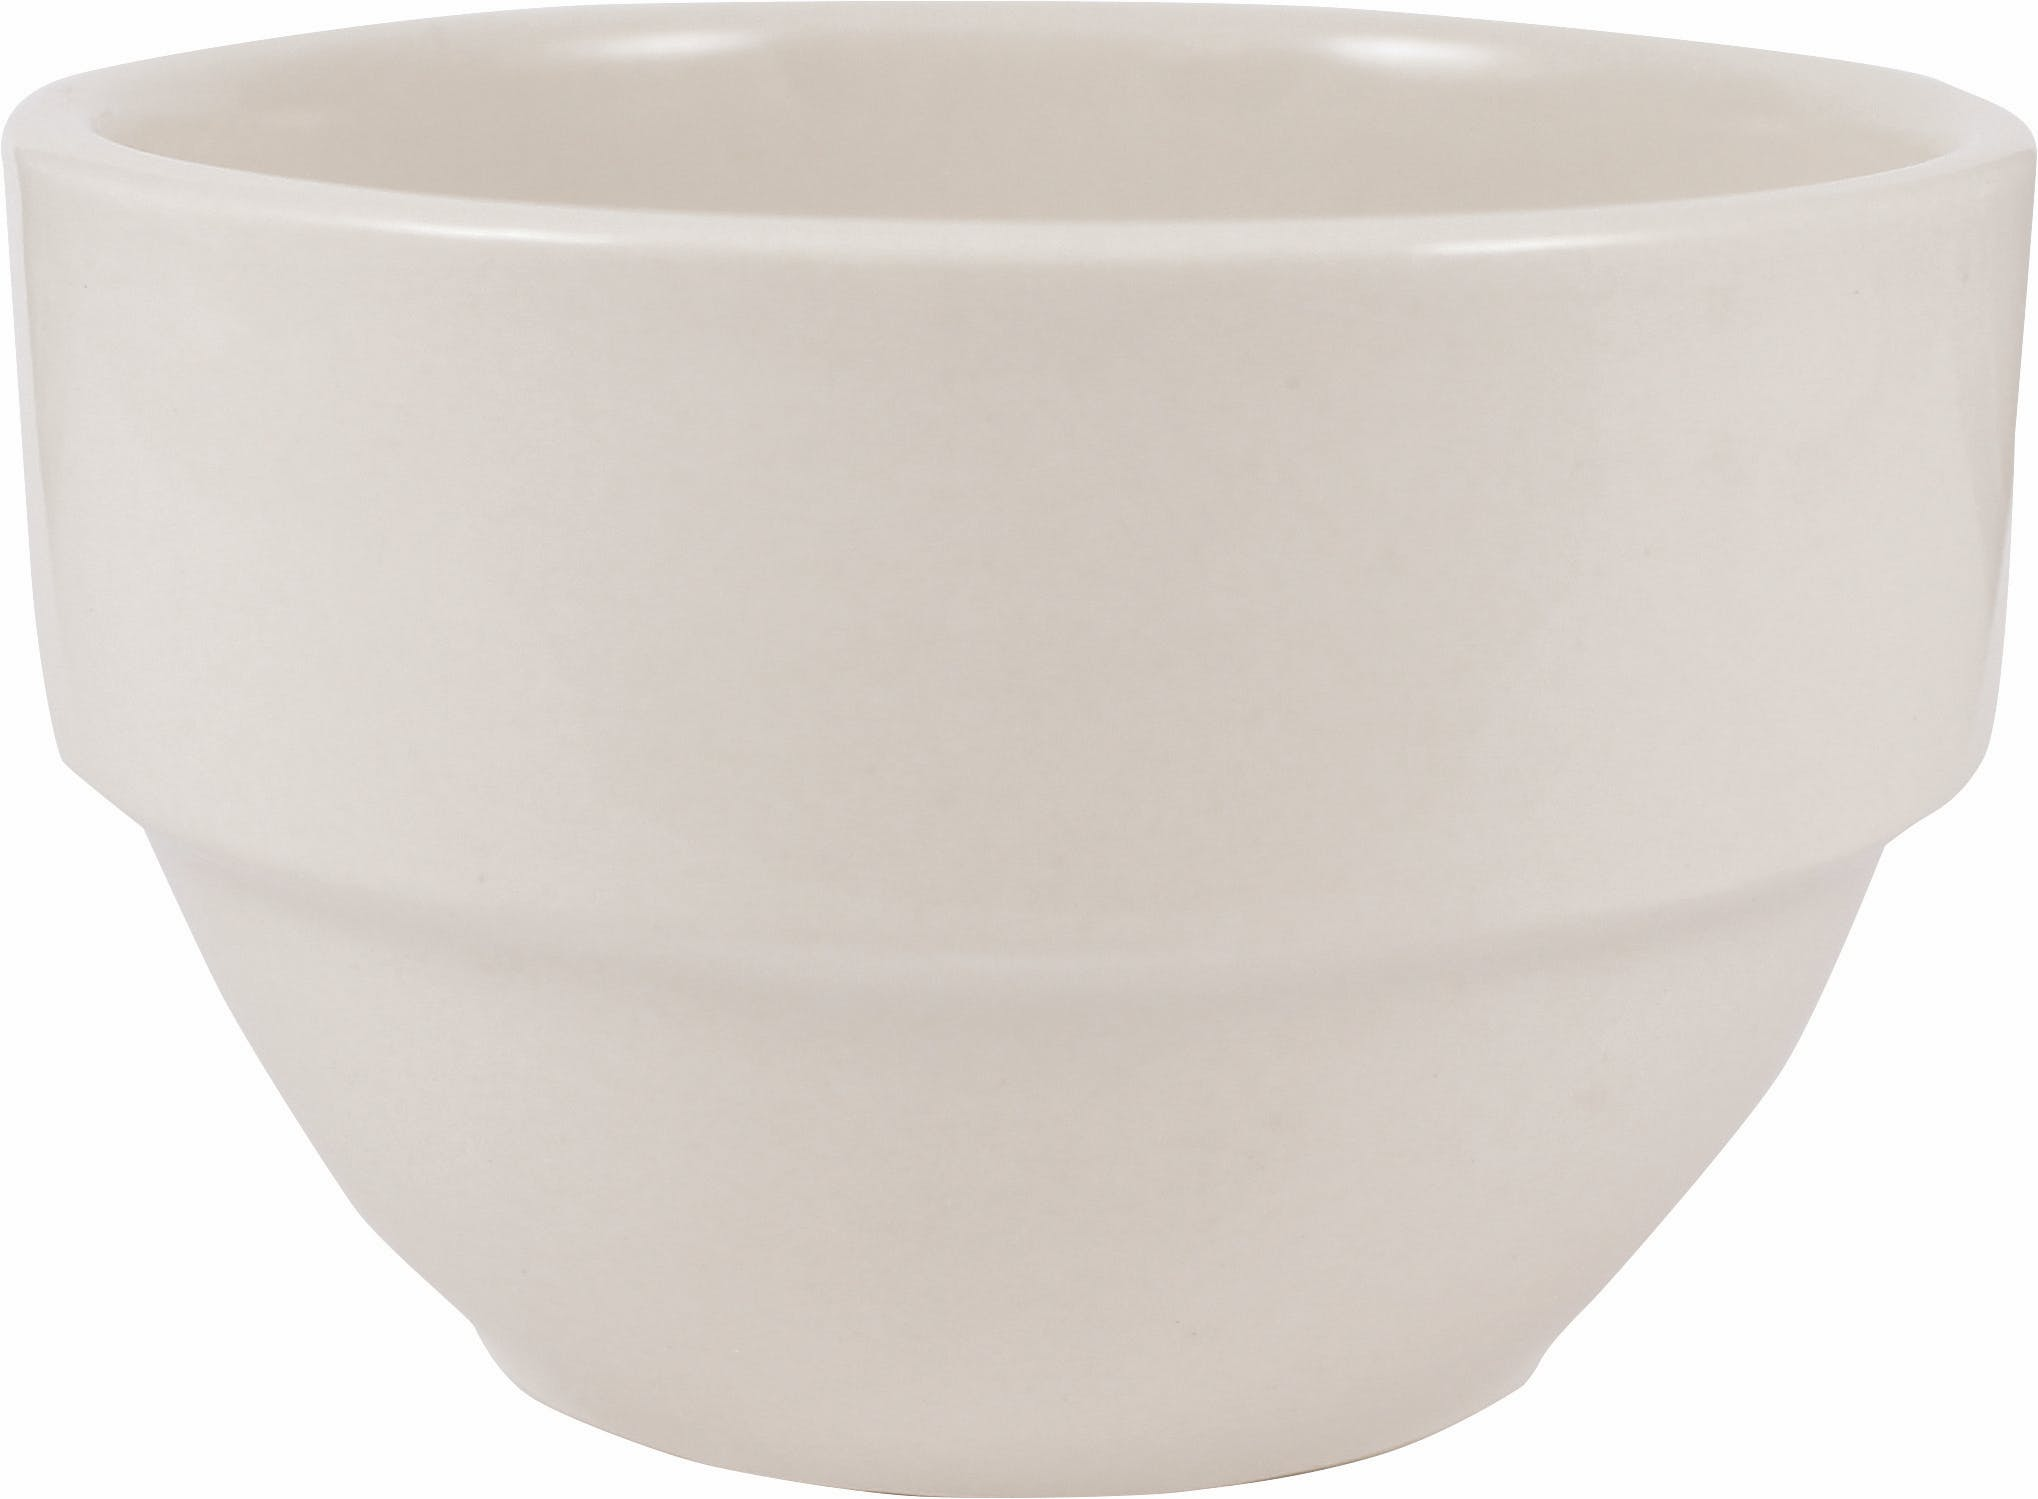 8.5 oz. American White Roma Stacking Bowl  Plate sold by Prestige Glassware